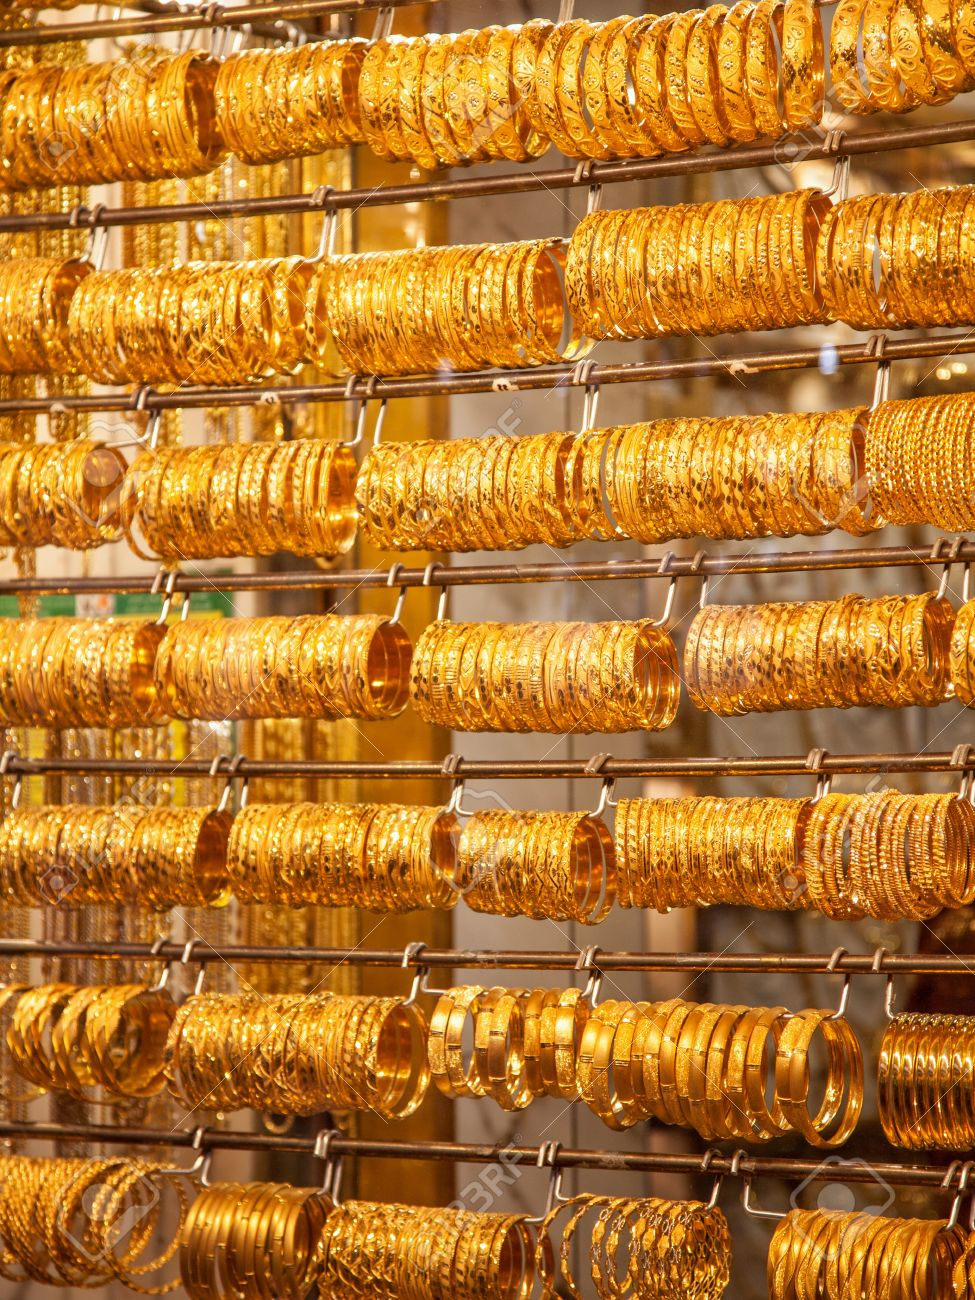 display emirates dubai gold souq arab stock image arabic dubais of jewelry deira at united photo in